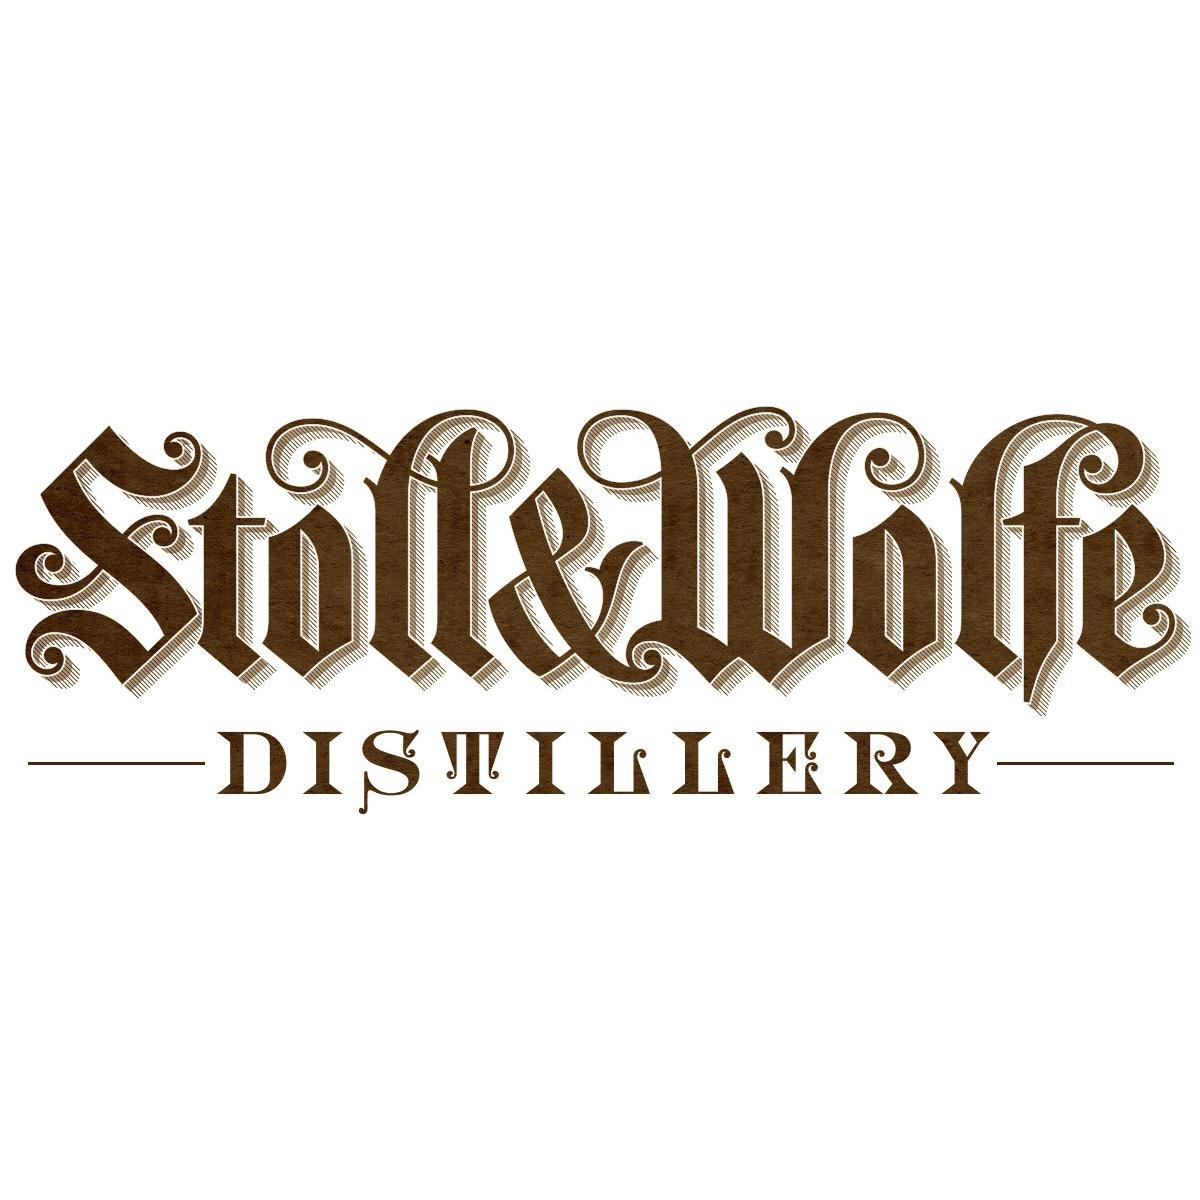 Stoll & Wolfe Distillery image 7